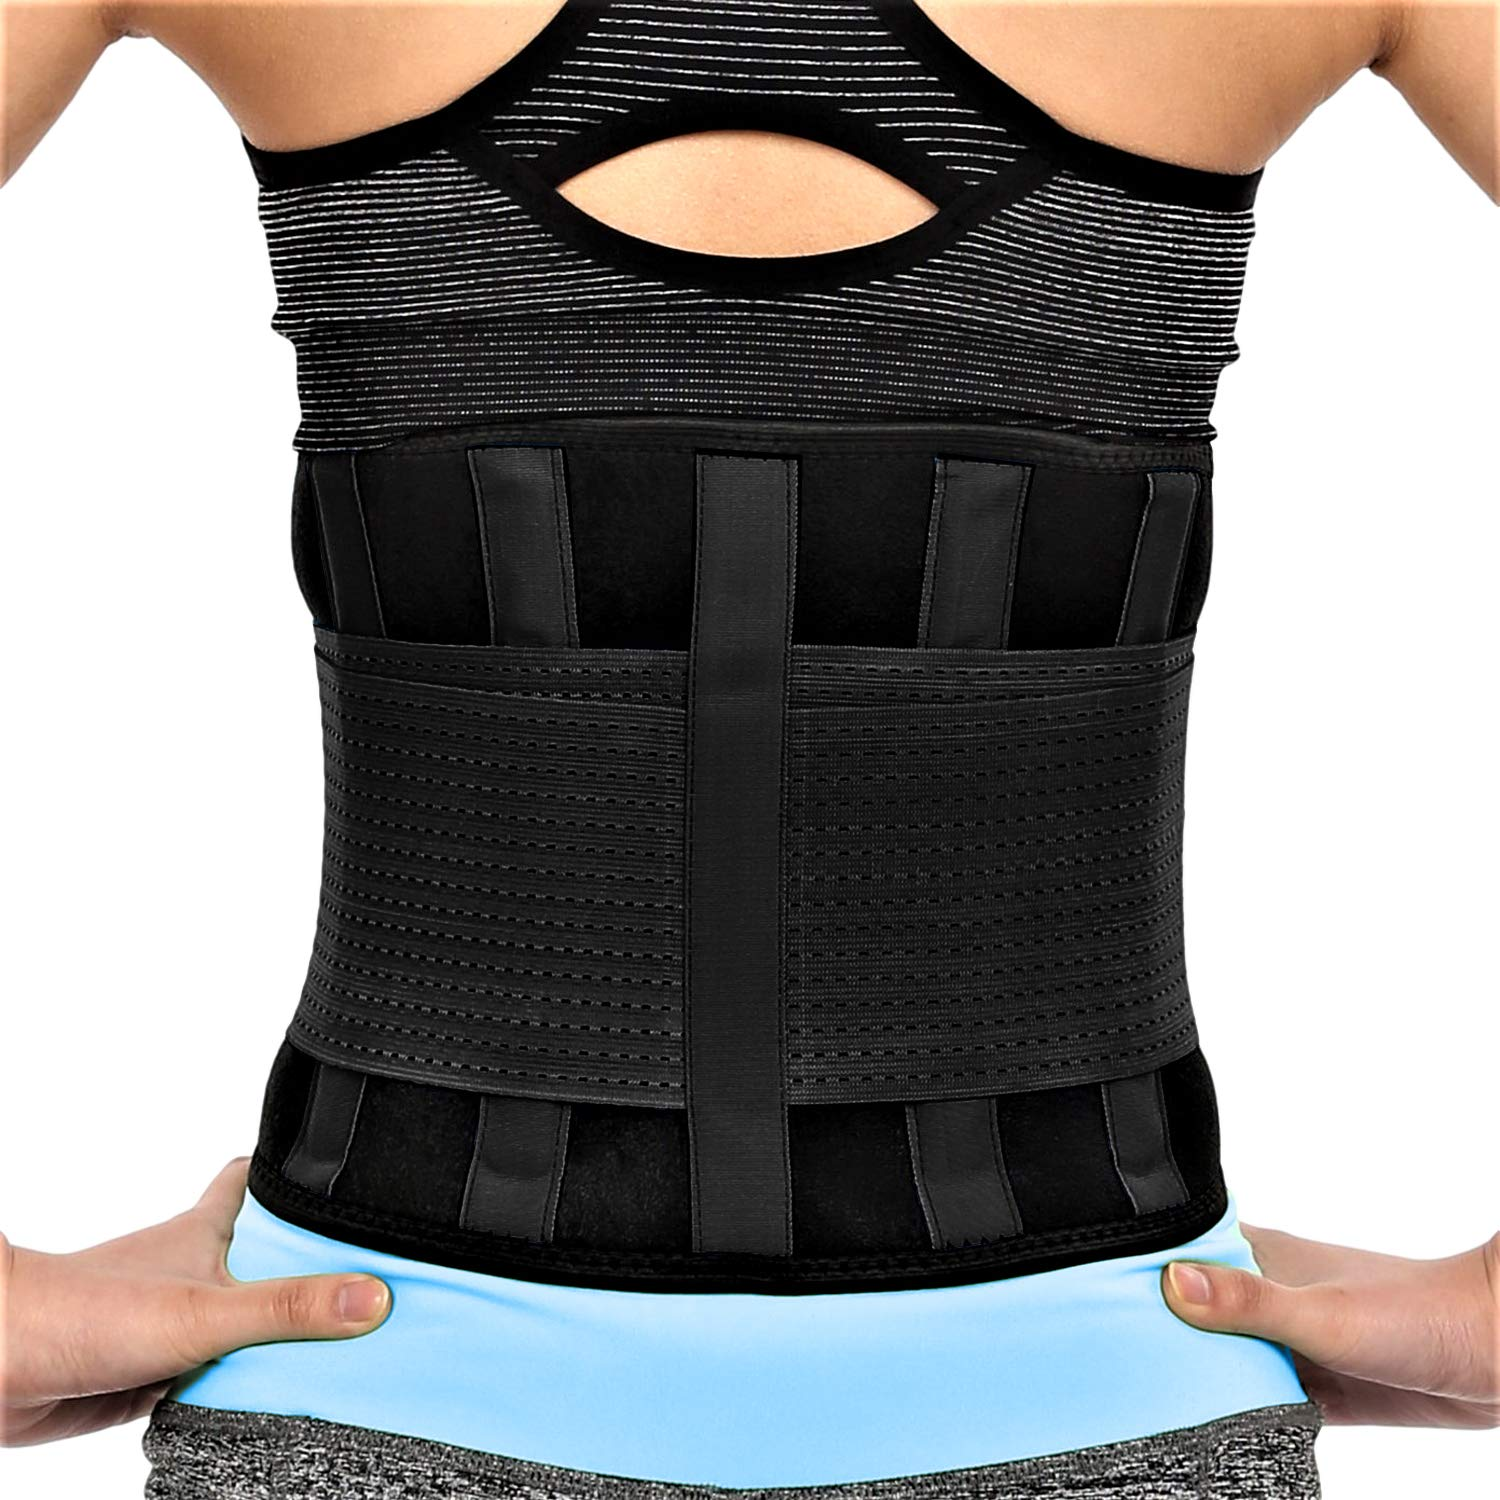 RiptGear Back Brace for Men and Women - Back Pain Relief Support for Lower Back Pain and Hip Pain - Lumbar Severe Back Pain Relief for Herniated Disc and Sciatica (Black, Small - 23'' to 27'')